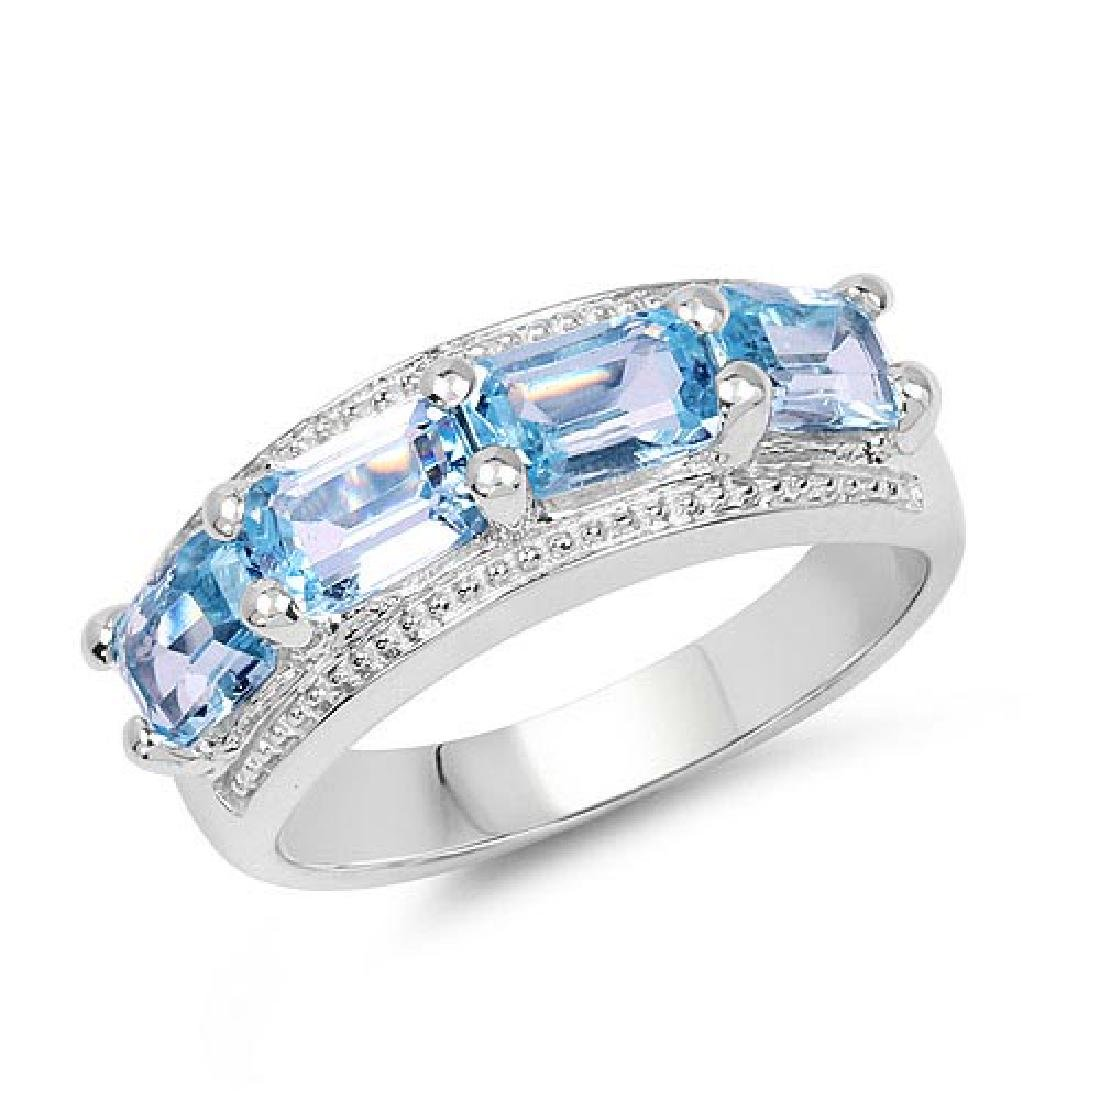 2.72 Carat Genuine Blue Topaz .925 Sterling Silver Ring